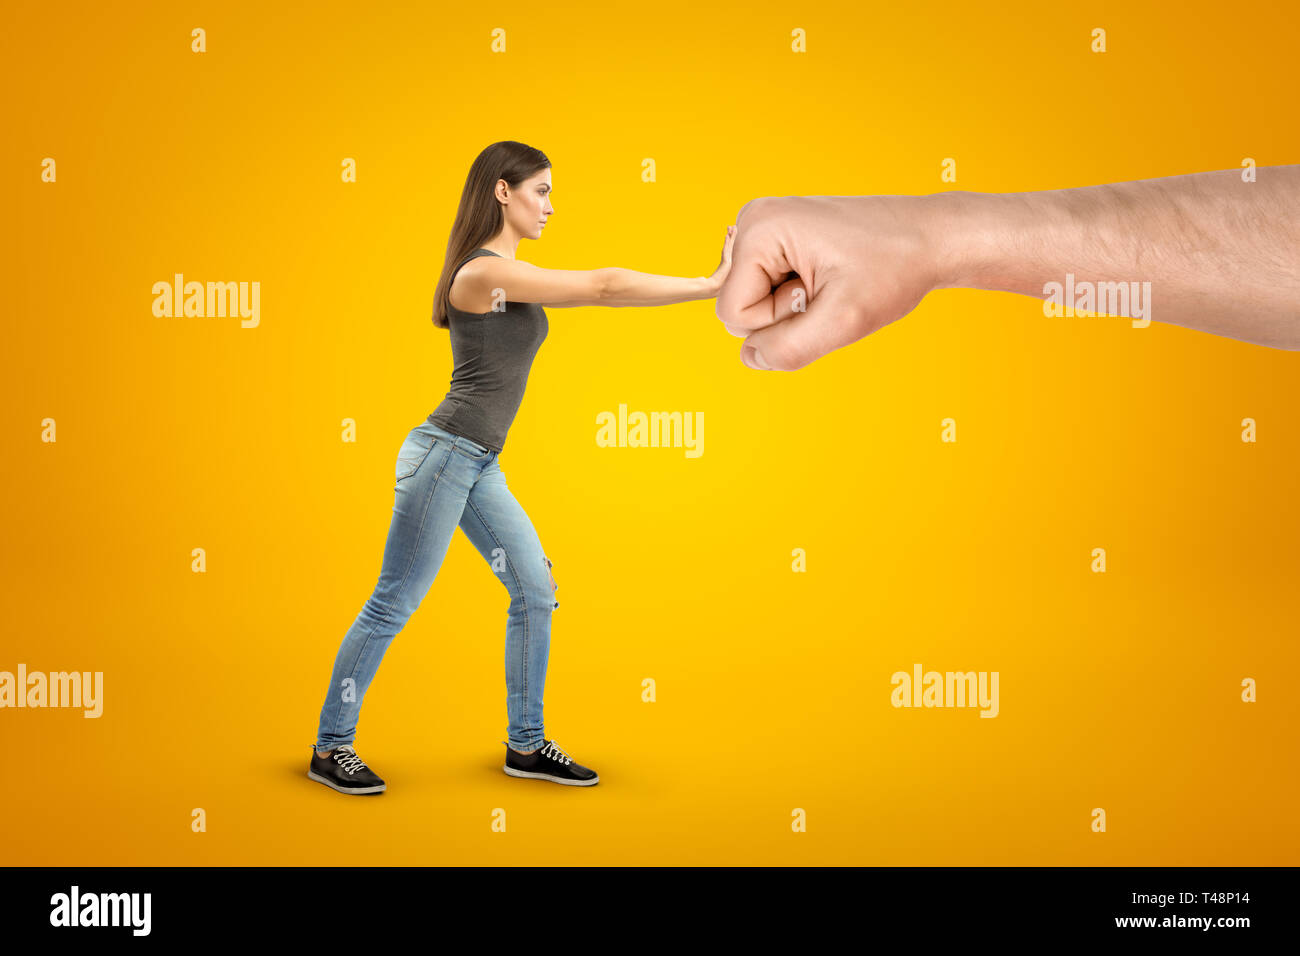 Young brunette girl wearing casual jeans and t-shirt making stop gesture against big male stretched fist on yellow background - Stock Image